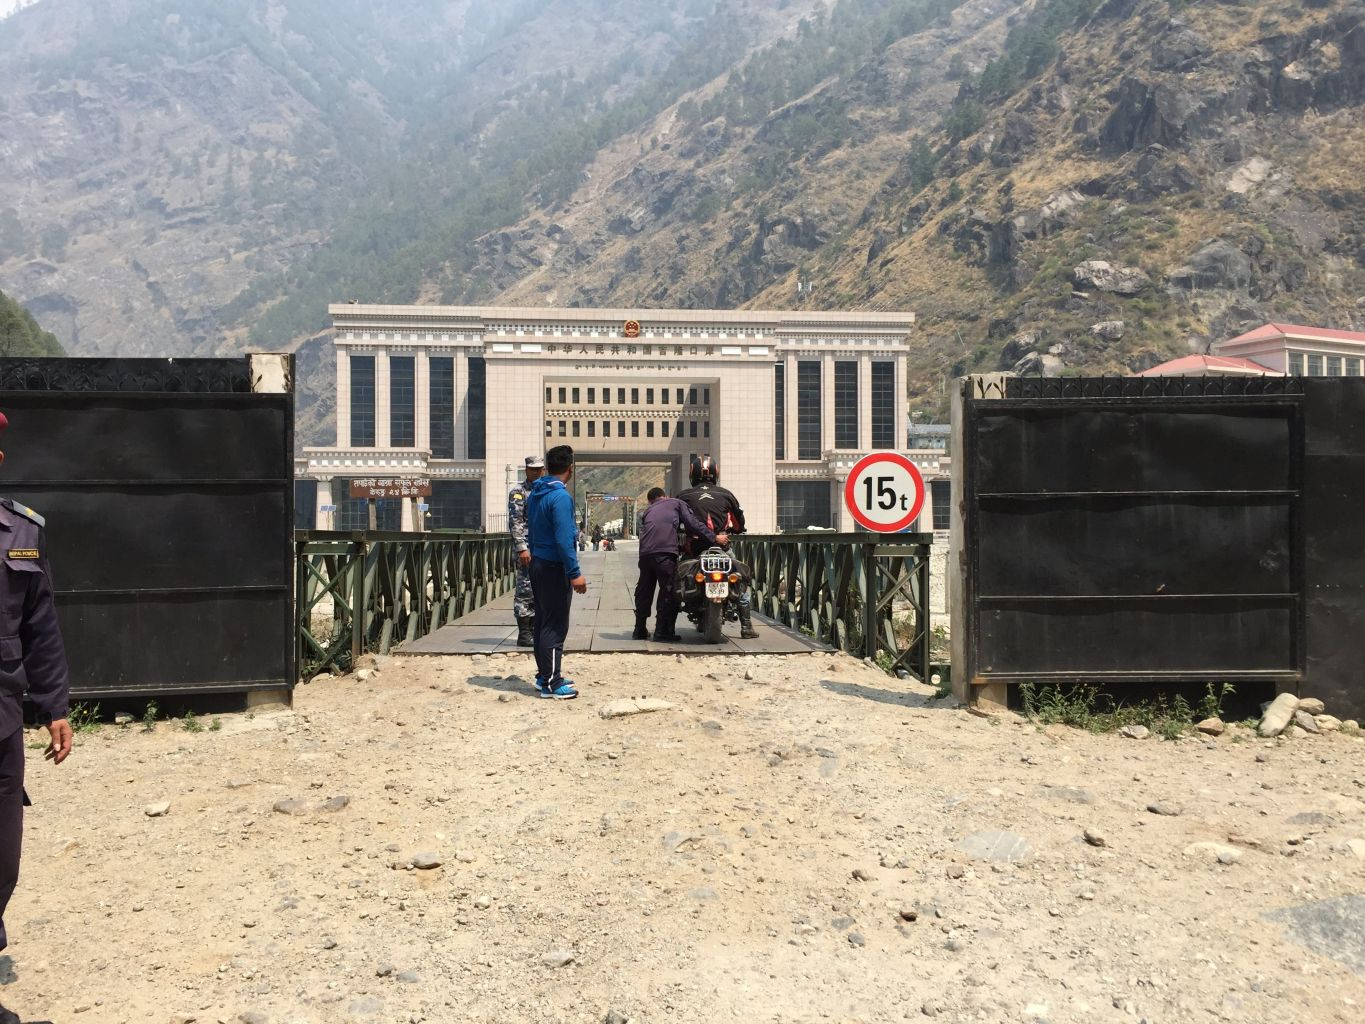 Tibet Border Crossing